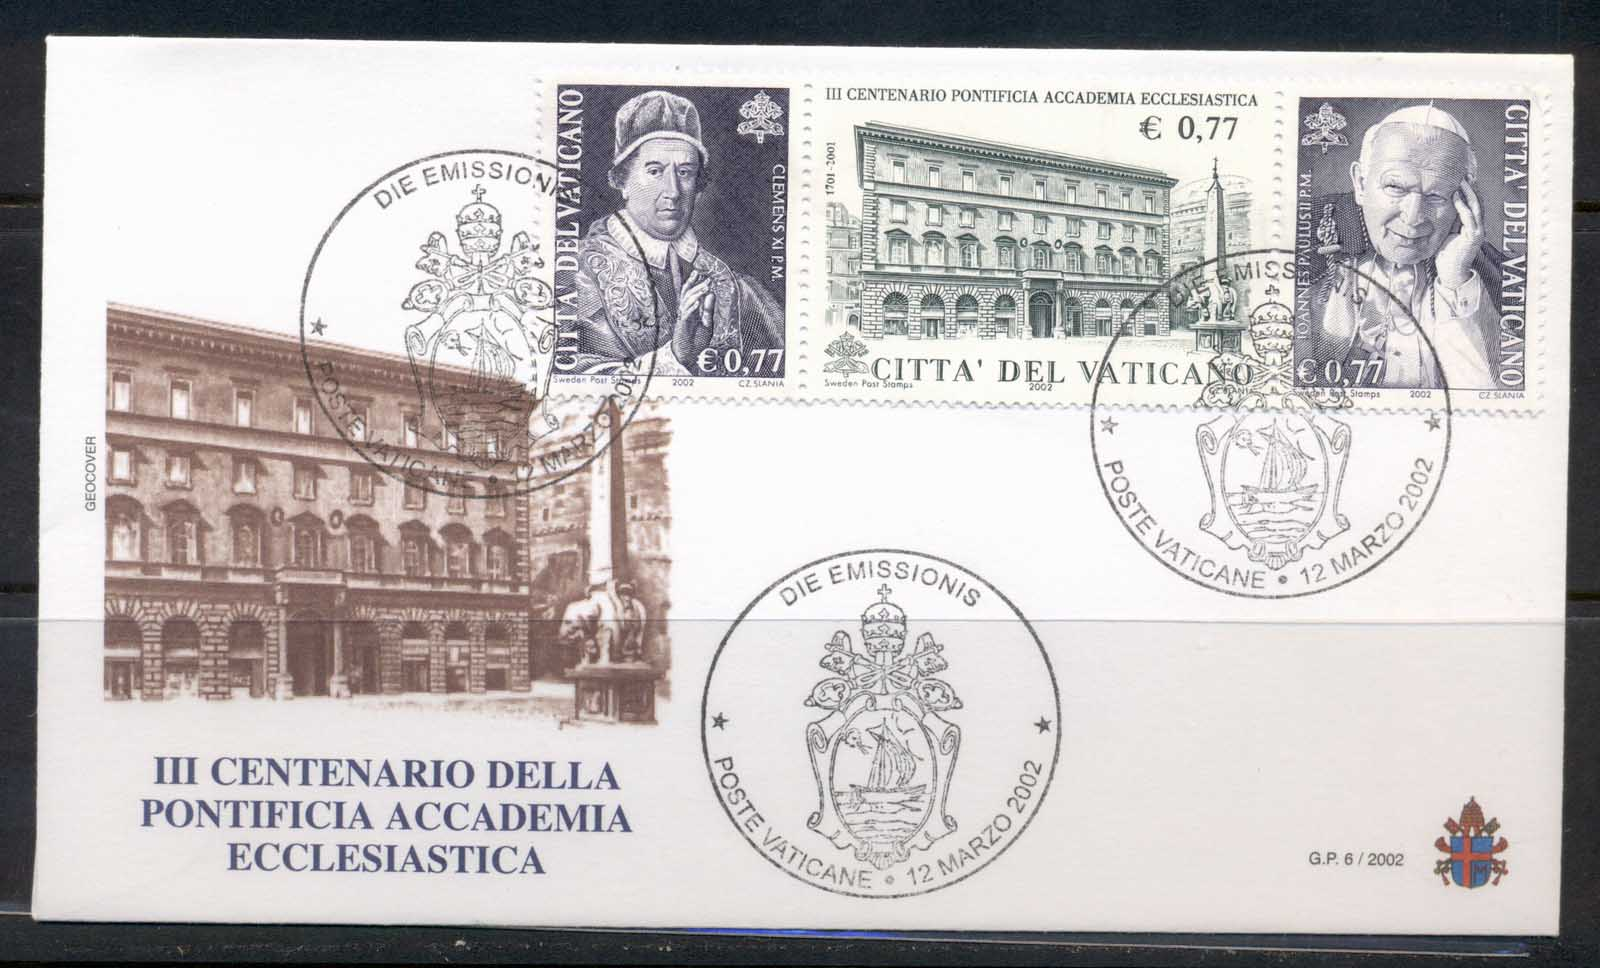 Vatican 2002 Pontifical Ecclesiastical Academy FDC